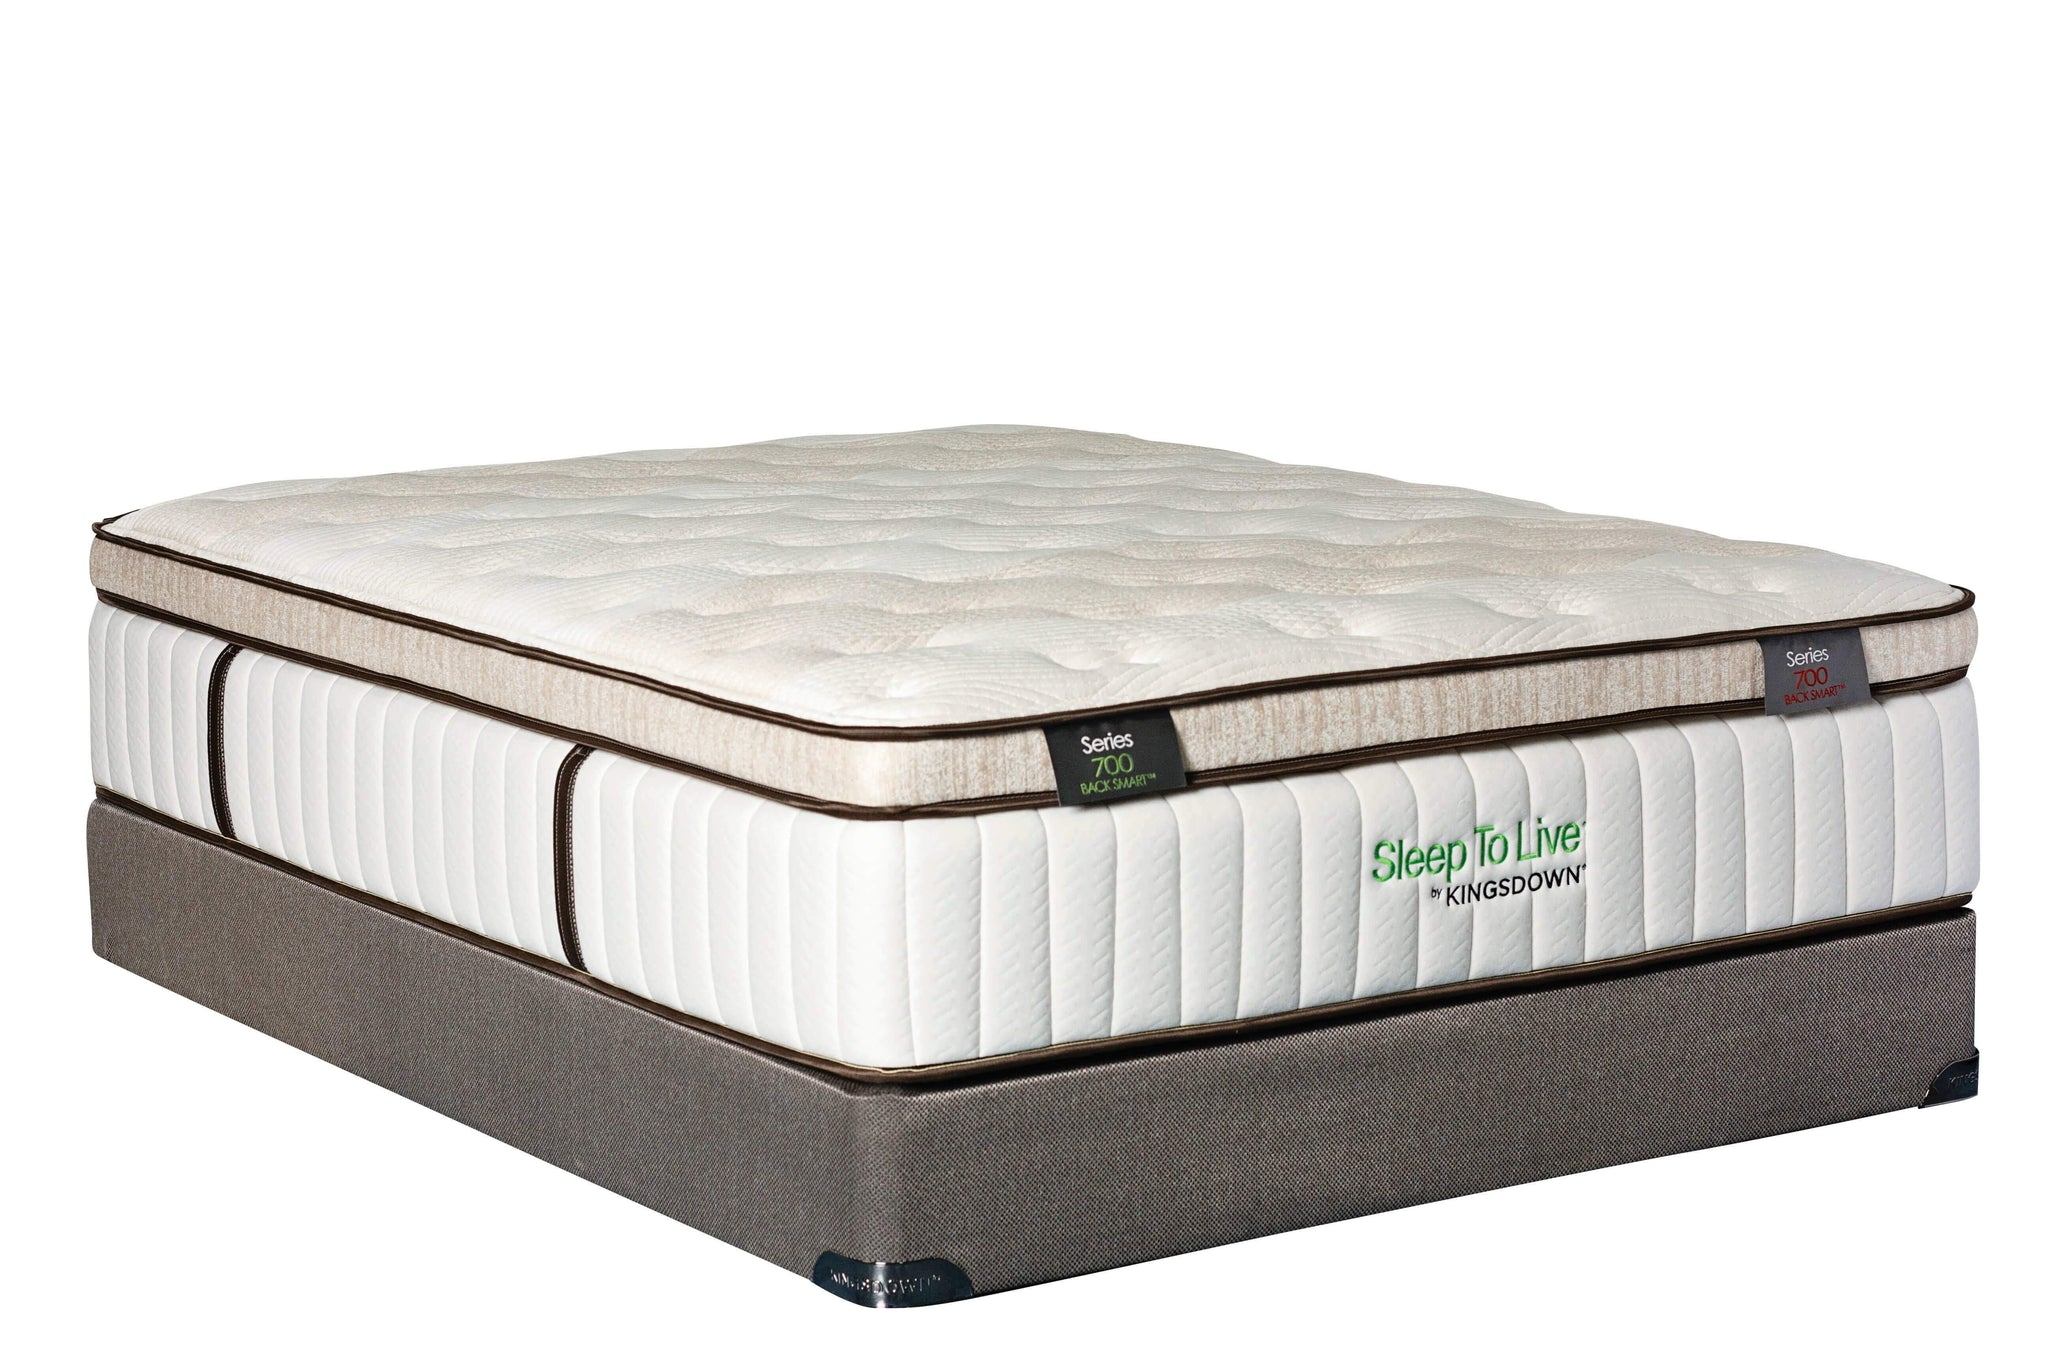 Kingsdown Sleep To Live 900 Green Mattress